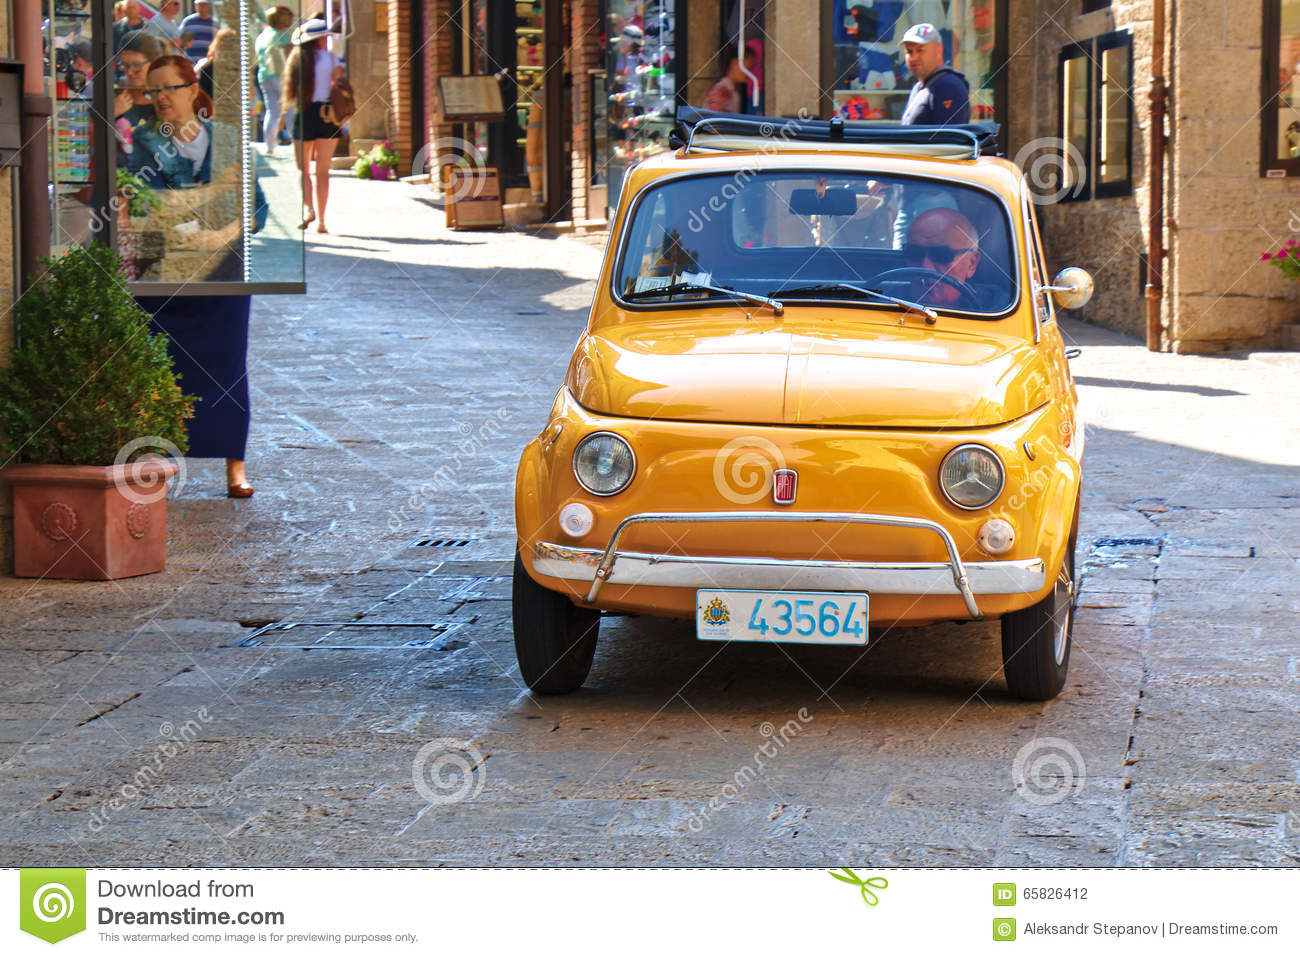 petite voiture italienne de ville fiat 500 sur la rue l 39 italie photographie ditorial image. Black Bedroom Furniture Sets. Home Design Ideas